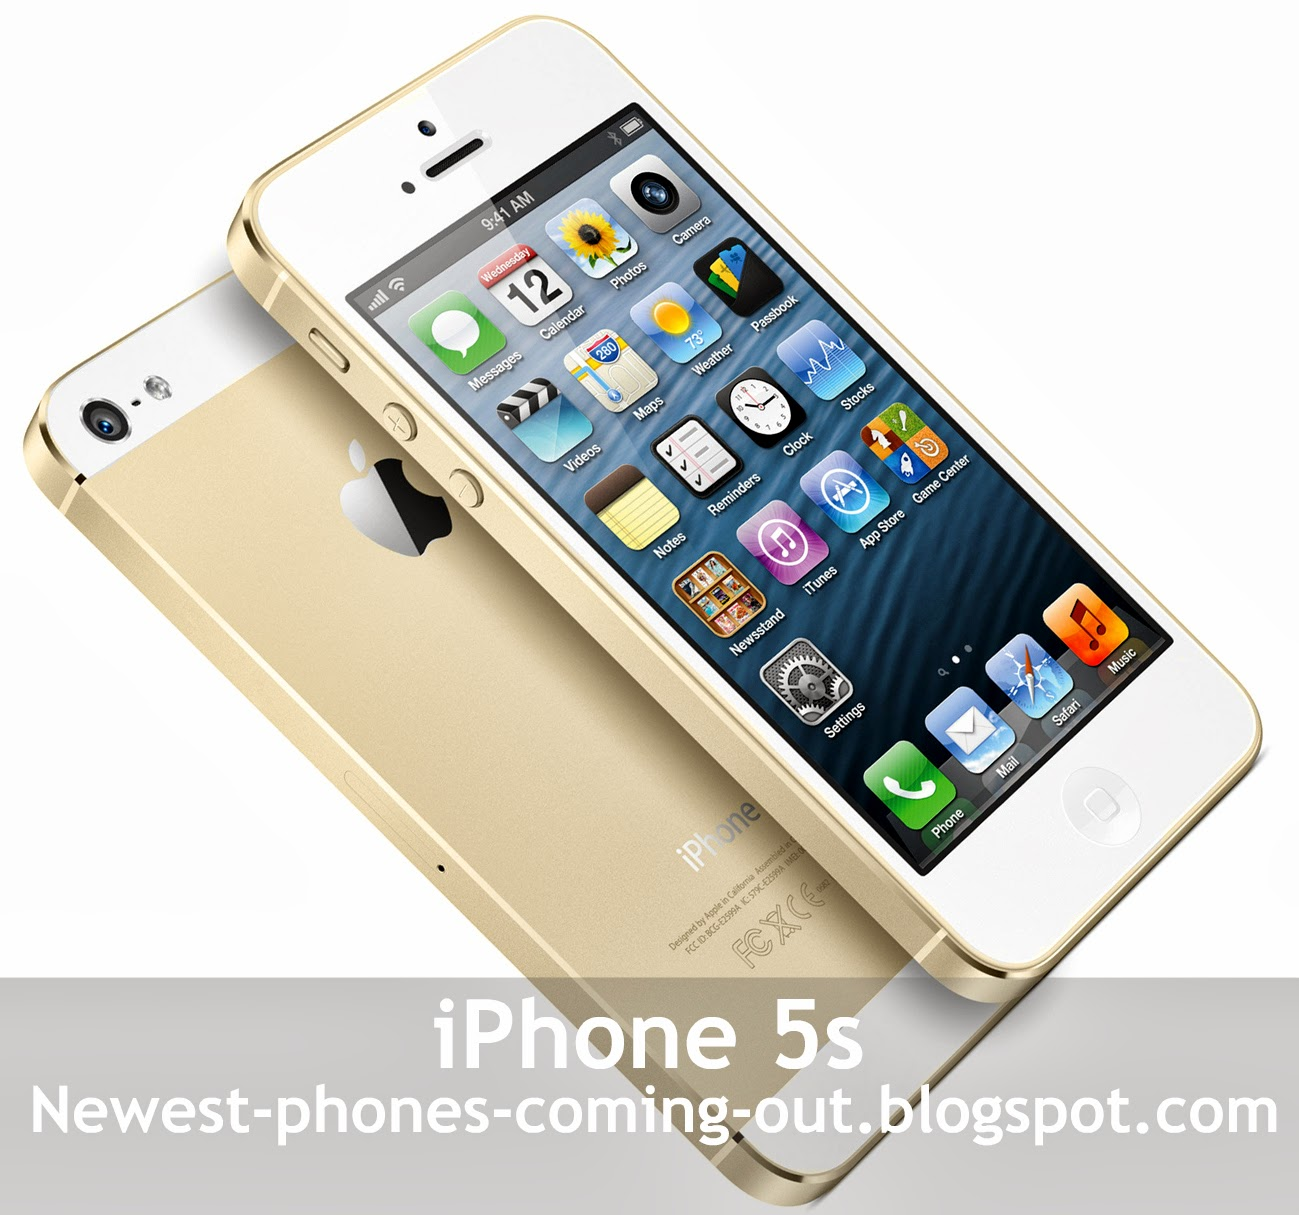 when was the iphone 5s released iphone 5s new phone coming out rastona2 19602